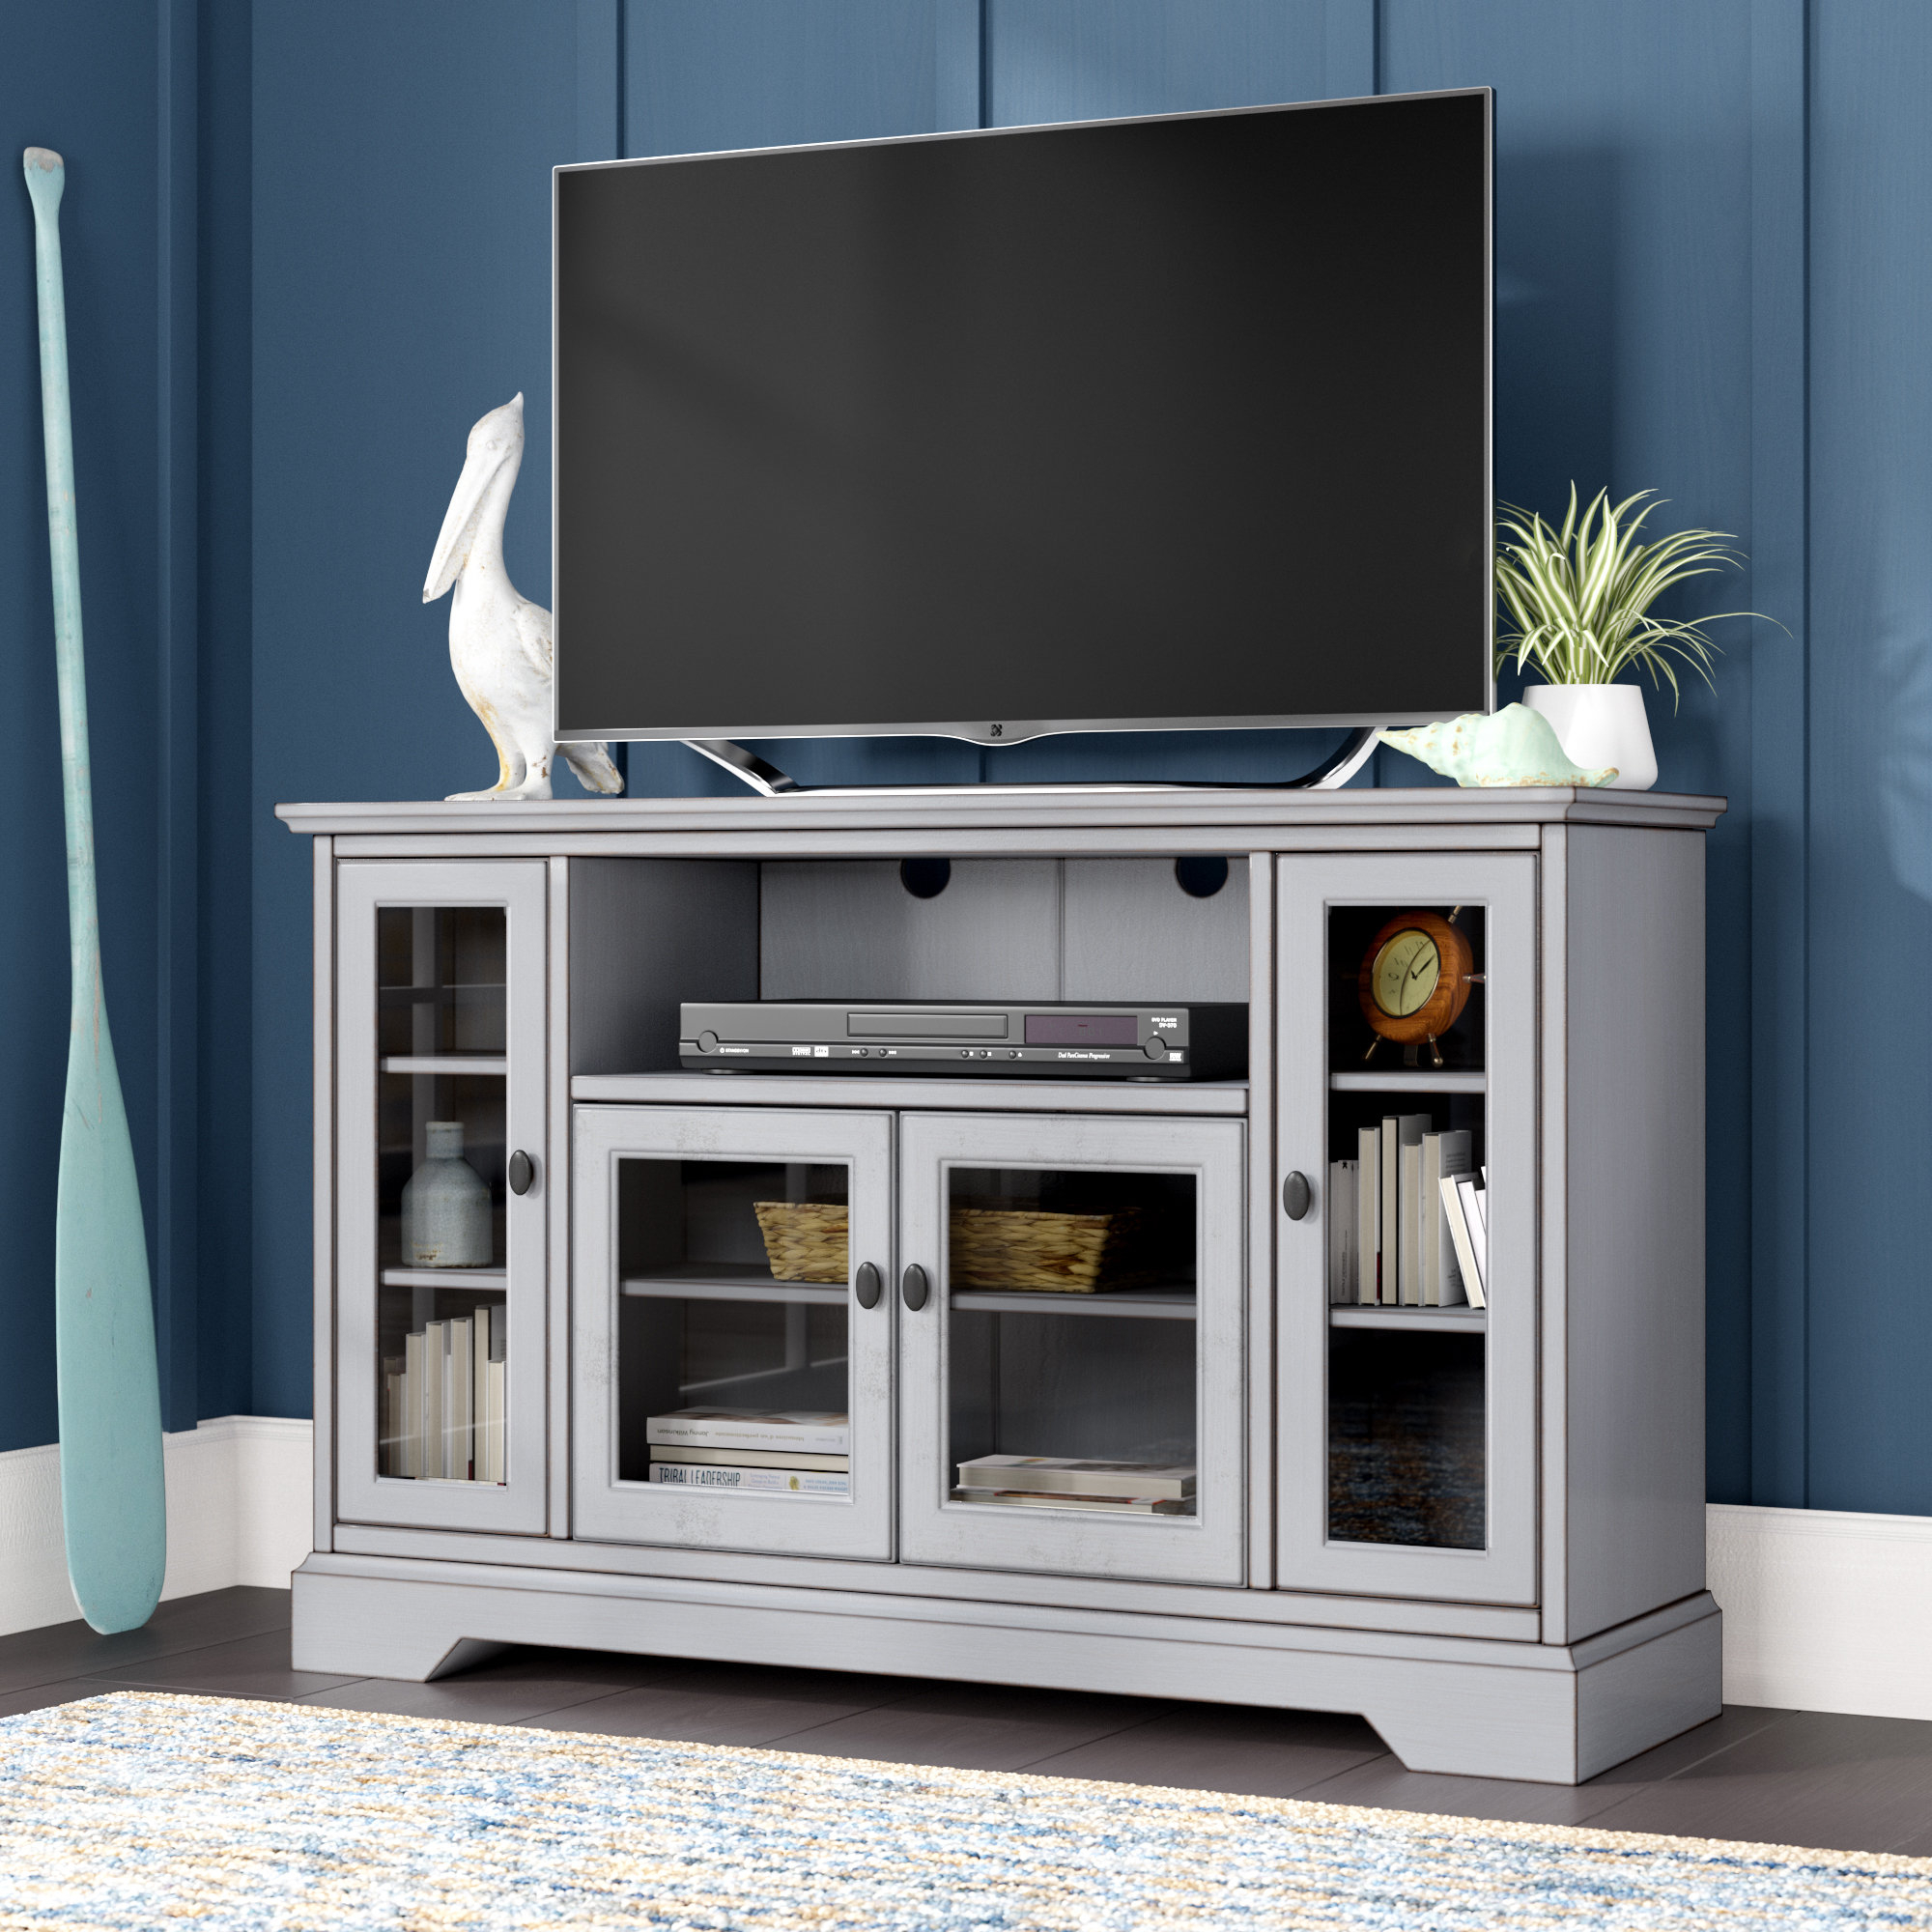 Tv Stands & Entertainment Centers You'll Love | Wayfair In Sinclair White 54 Inch Tv Stands (View 27 of 30)